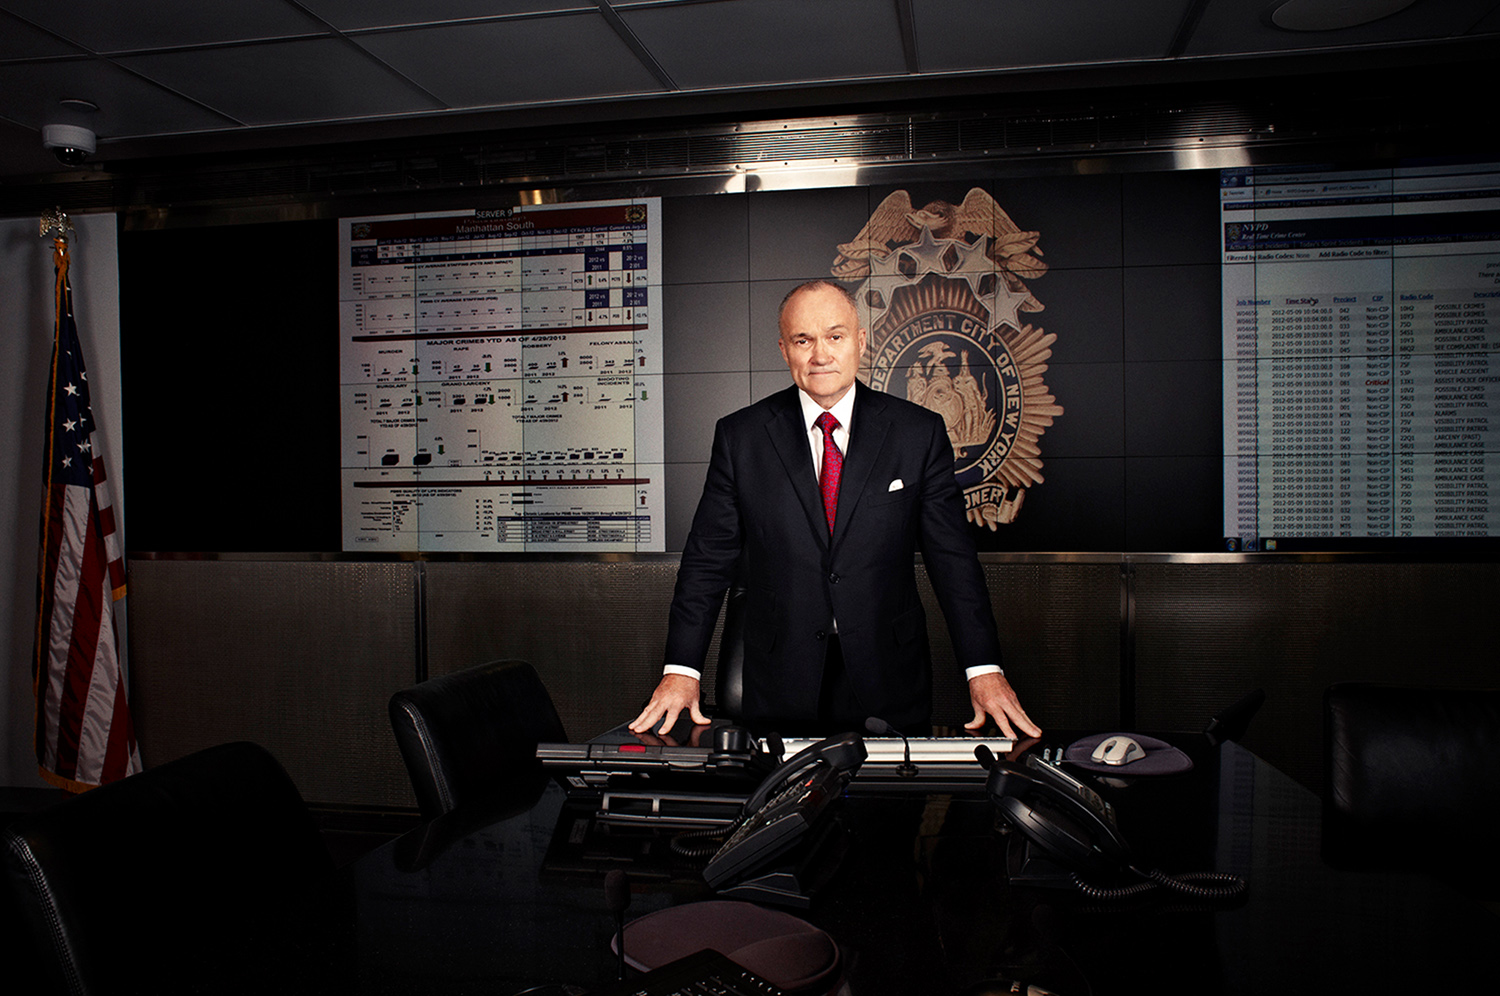 Ray Kelly - Former Police Commissioner of New York City